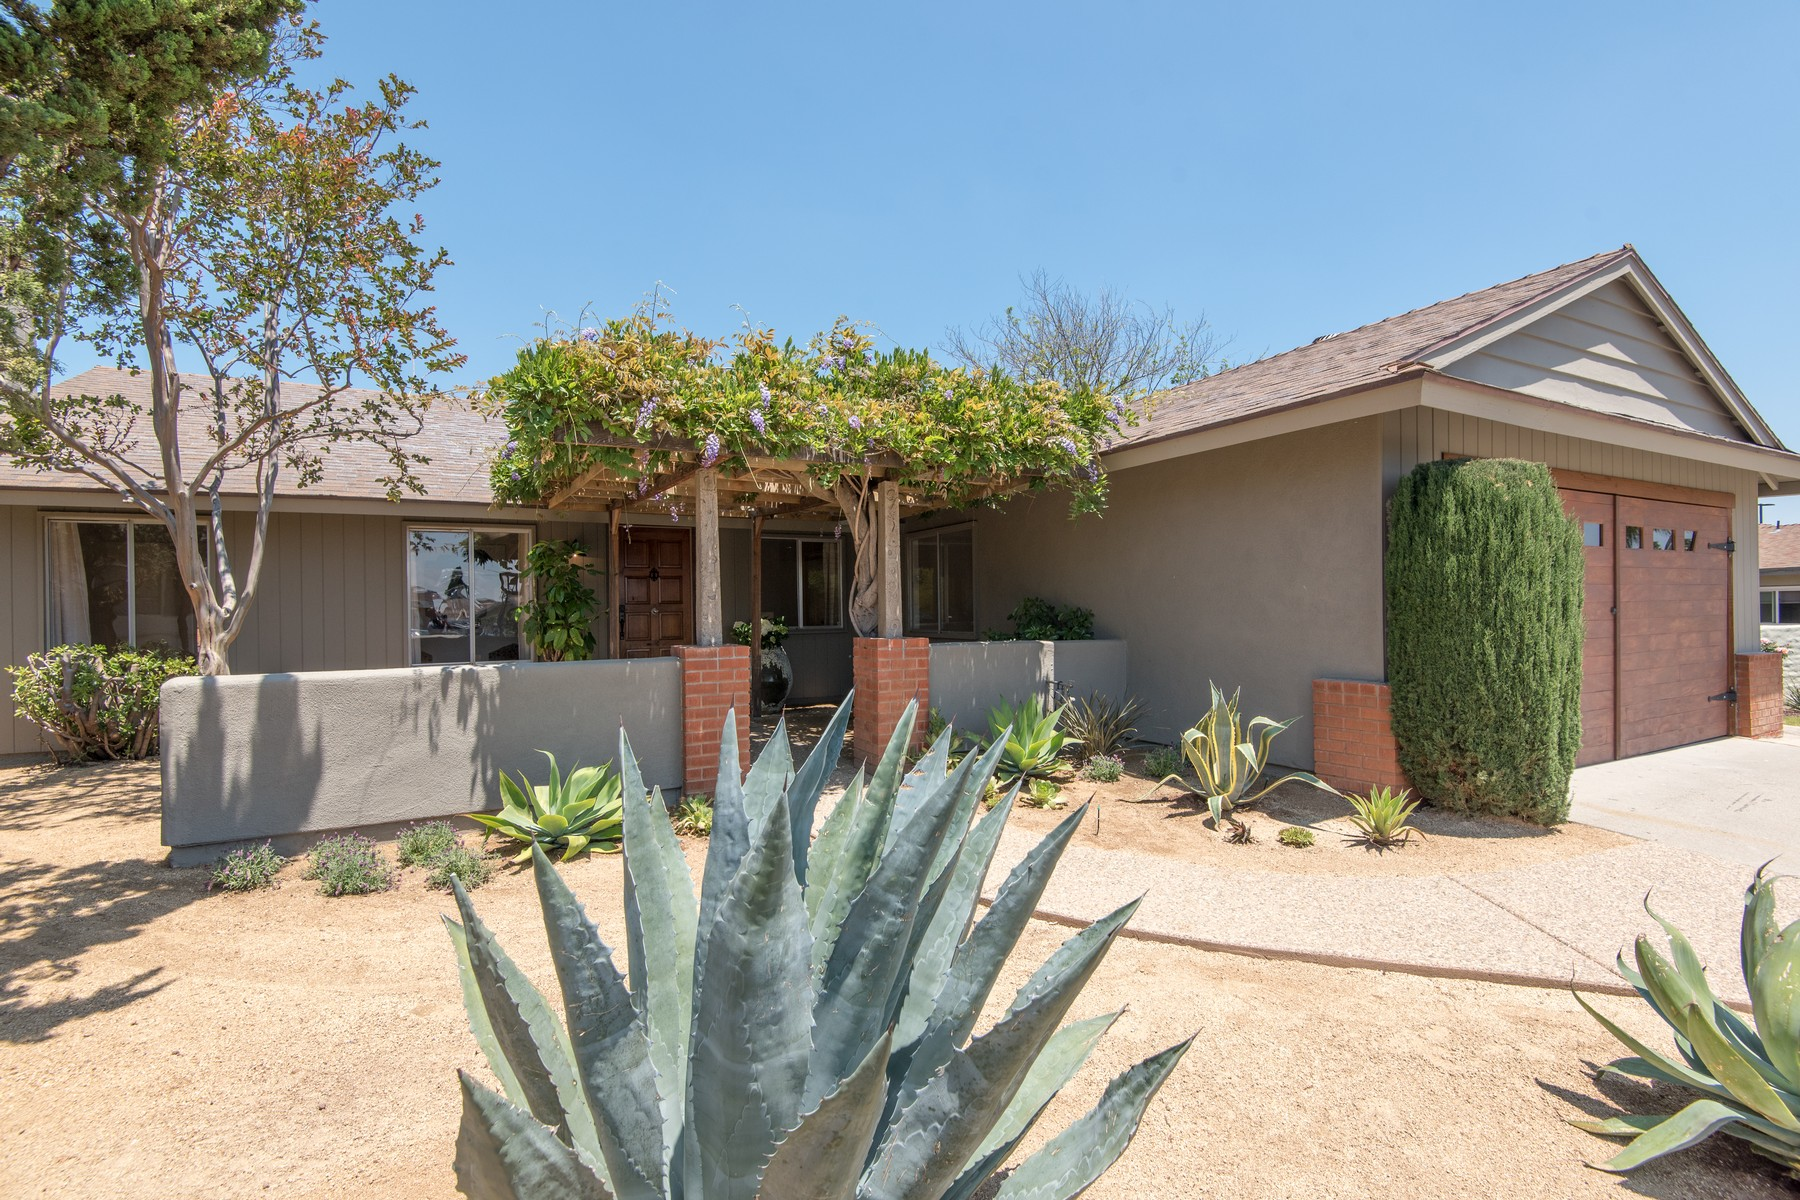 Single Family Home for Sale at 1444 Calle Place Escondido, California 92027 United States